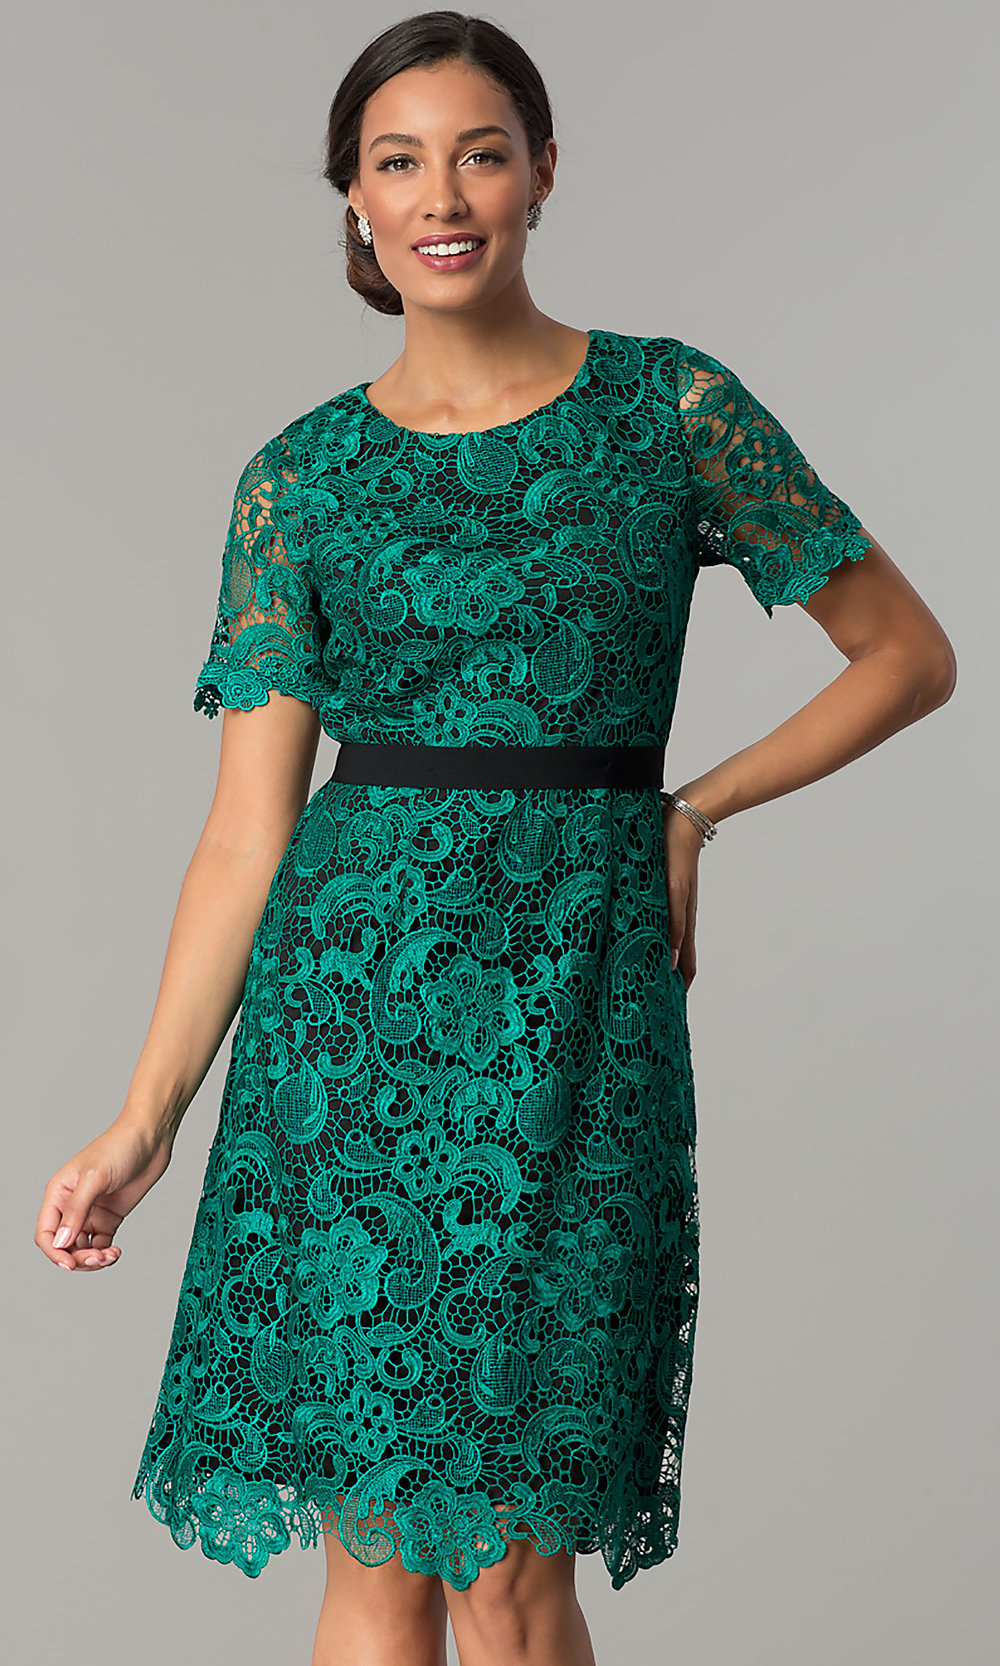 Sleeved Emerald Green Lace Party Dress - PromGirl